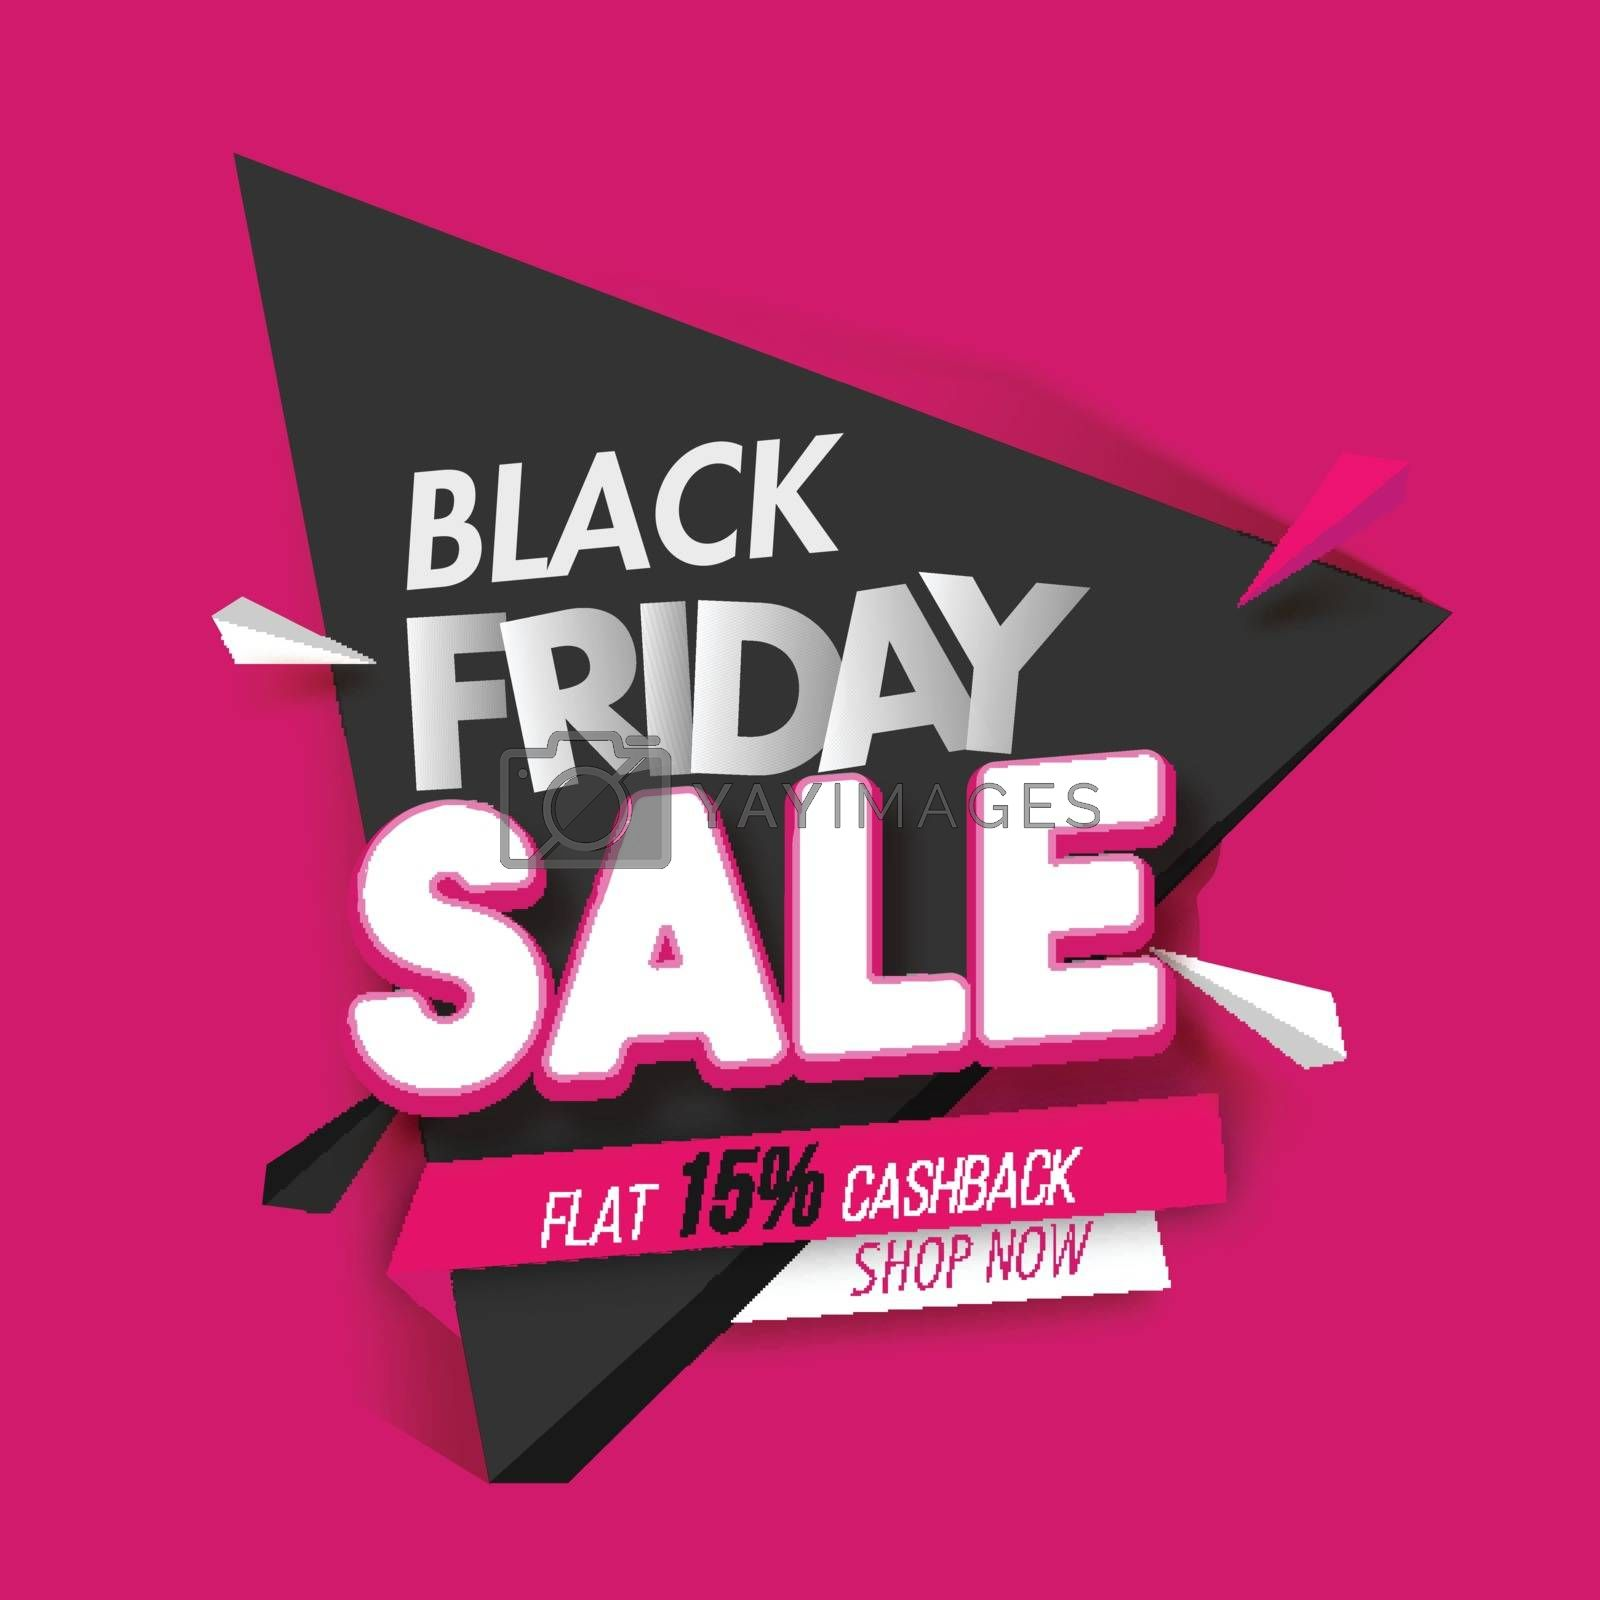 Black Friday Sale with 15% cashback offer on pink background for Advertising poster design.